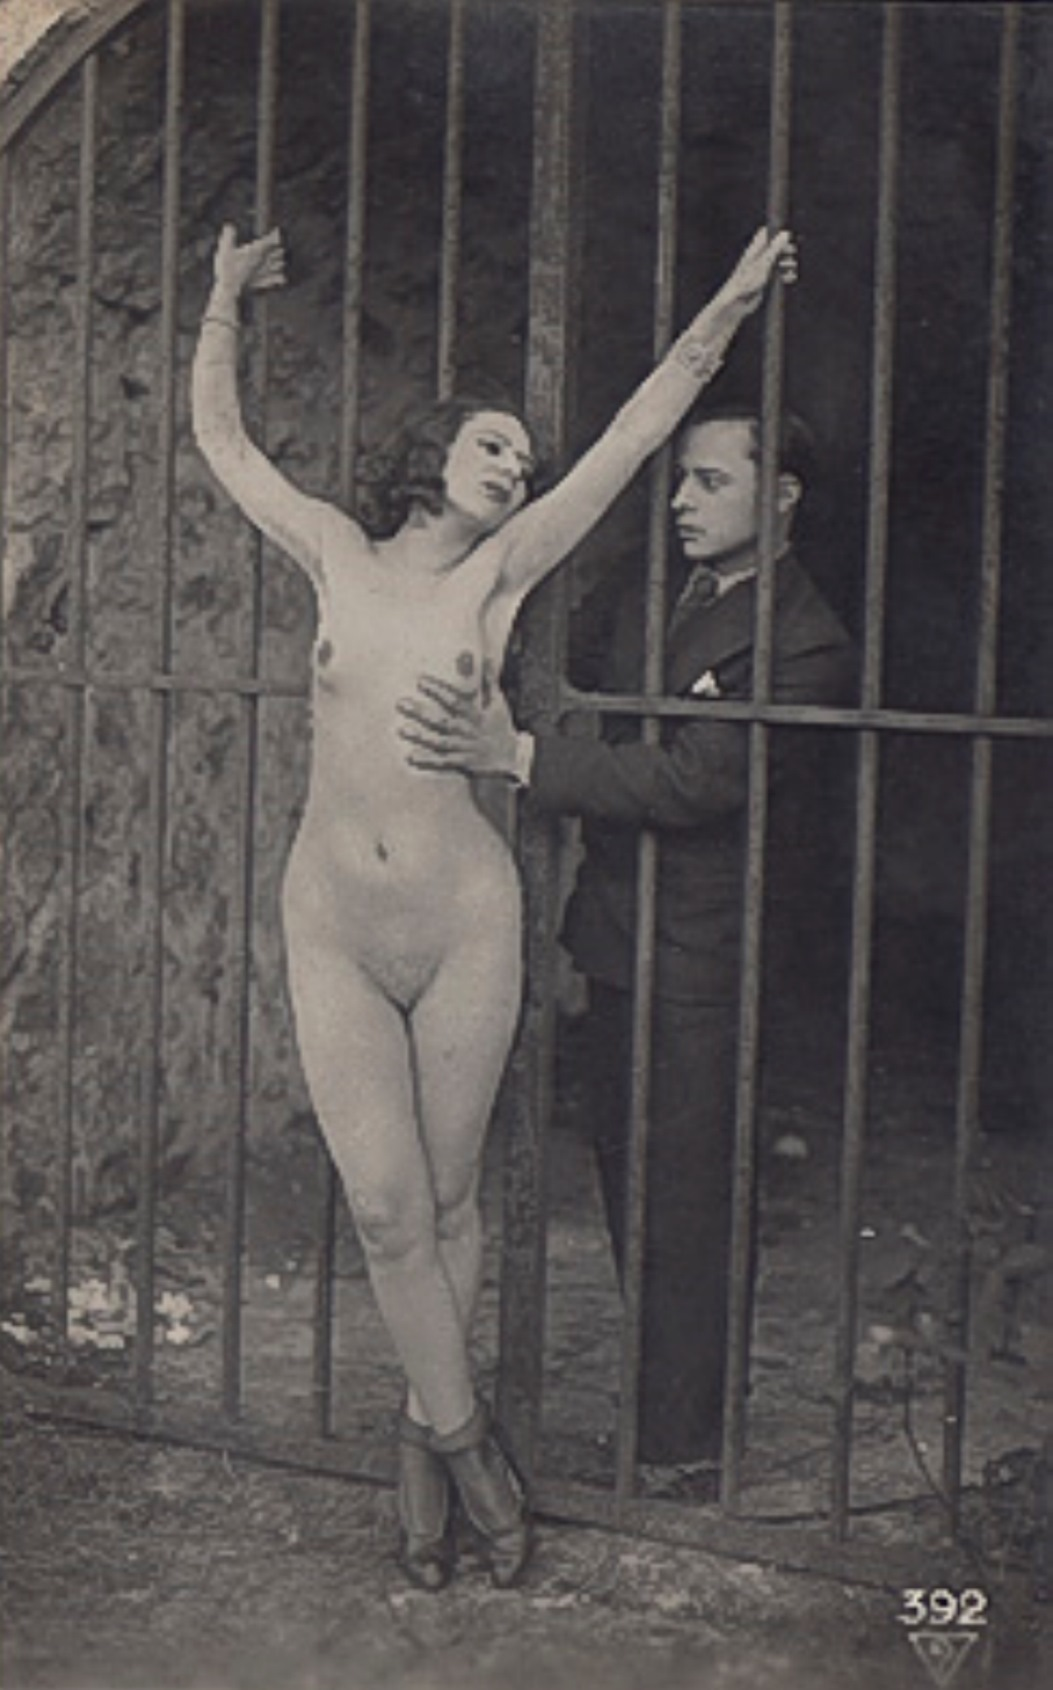 Photographe anonyme. The grip 1910. Via iphotocentral